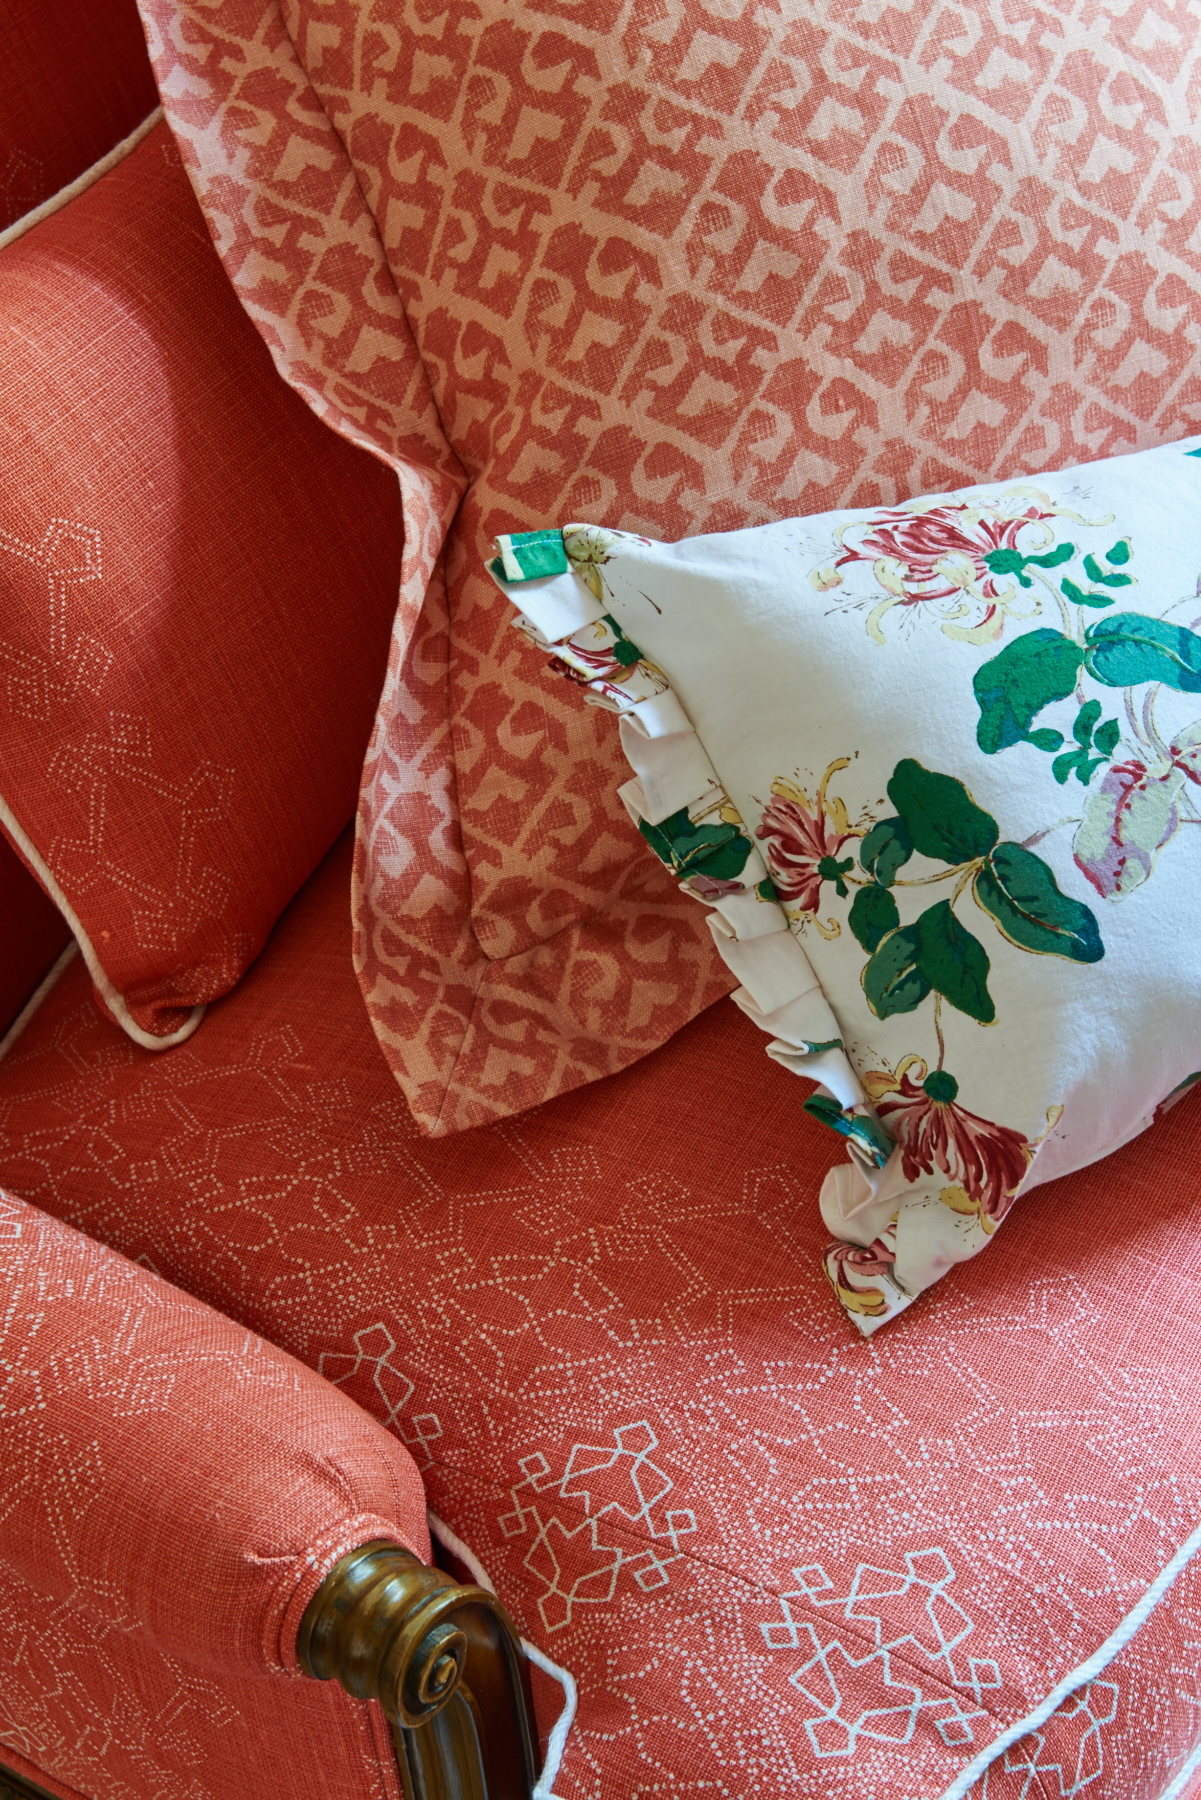 Red upholstered sitting chair with white piping and matching shams